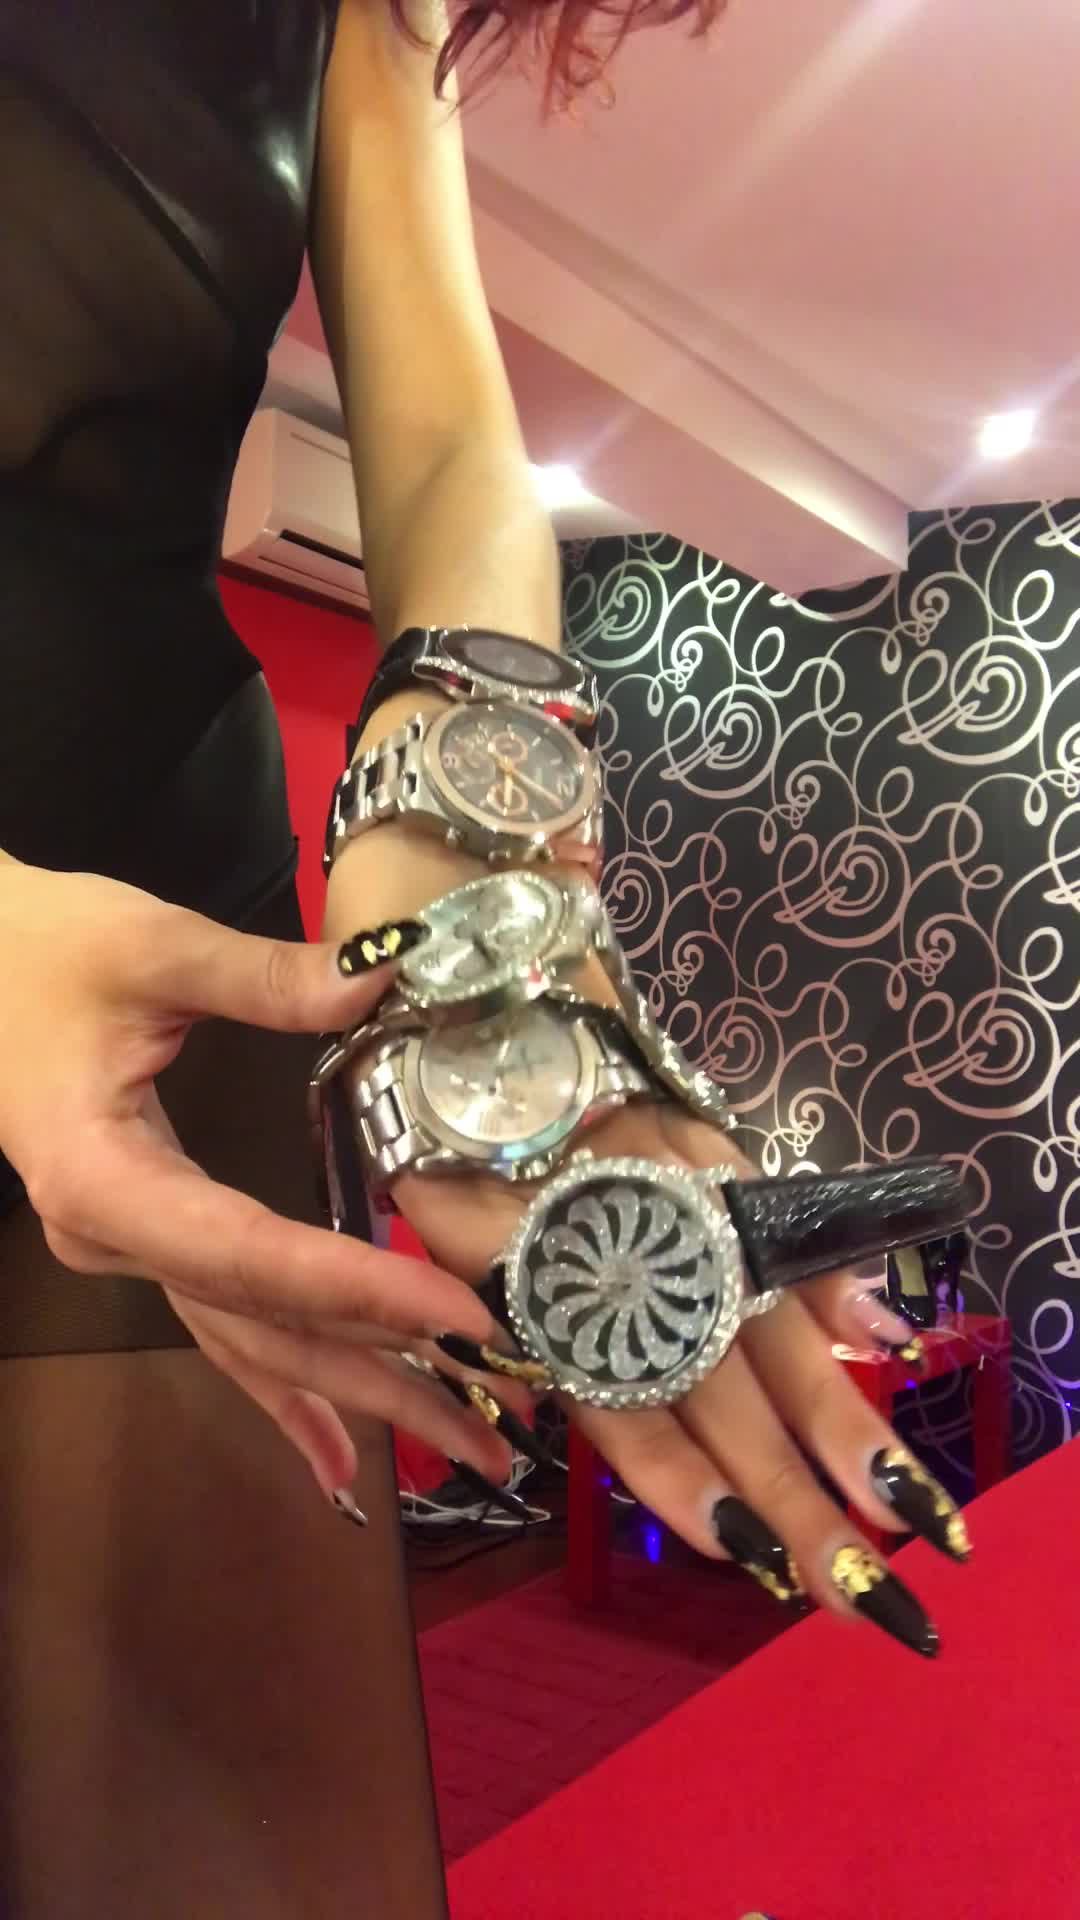 """MistressHelen"" (Goddess Worship, Hand Worship, Nails, Wrist Jobs, Wrist Watch Fetish) All my favourite wrist watches - ManyVids Production"